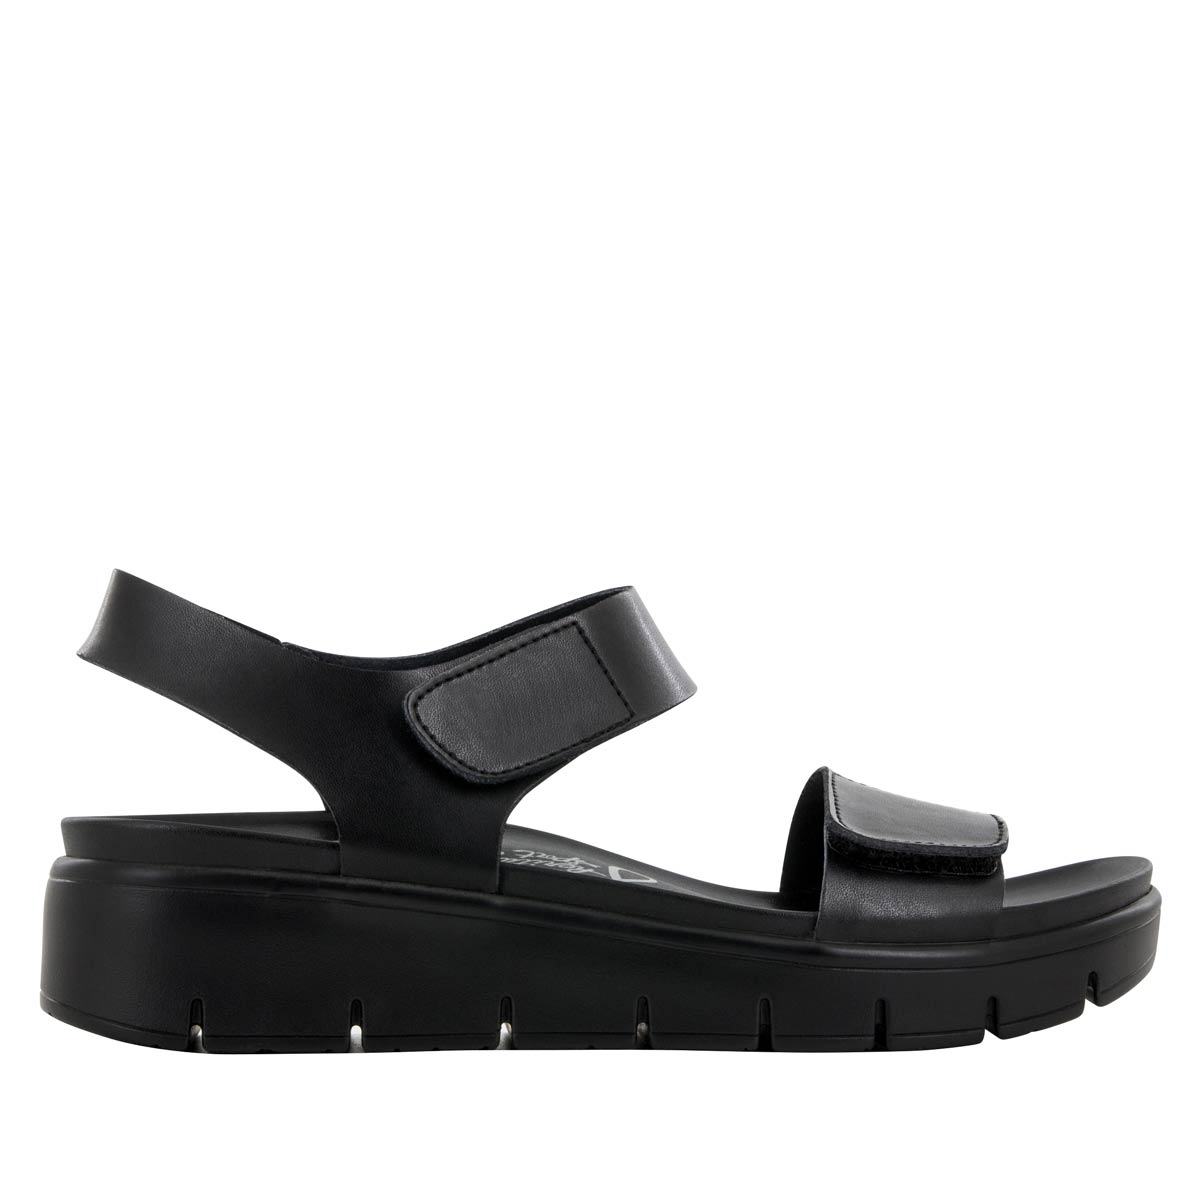 e574cf9e6 Playa Black Nappa Sandal - Alegria Shoes